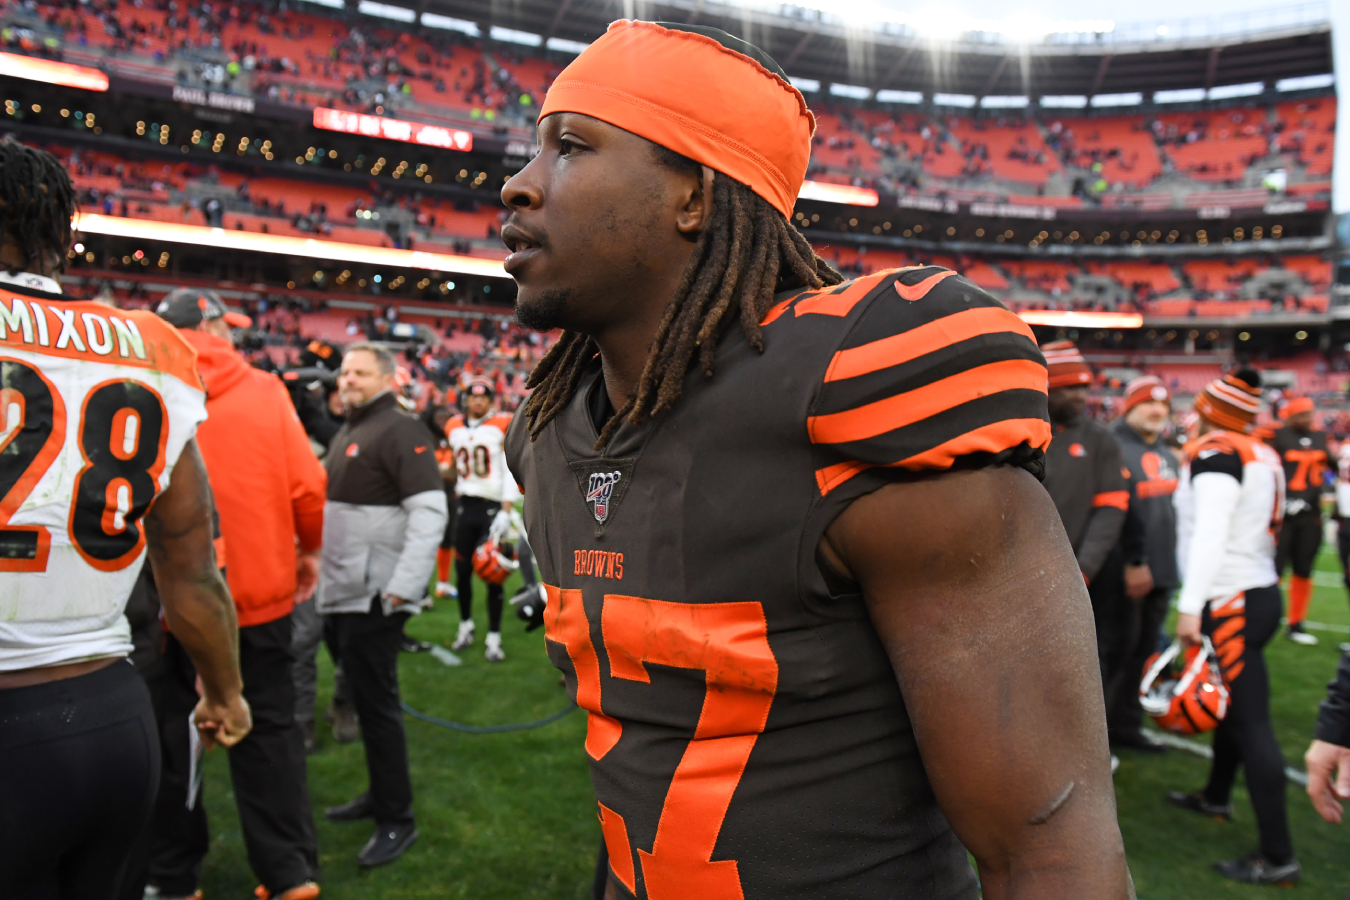 After having a great rookie year, Kareem Hunt has had a rough time in the NFL. However, he will still make millions with the Browns in 2020.